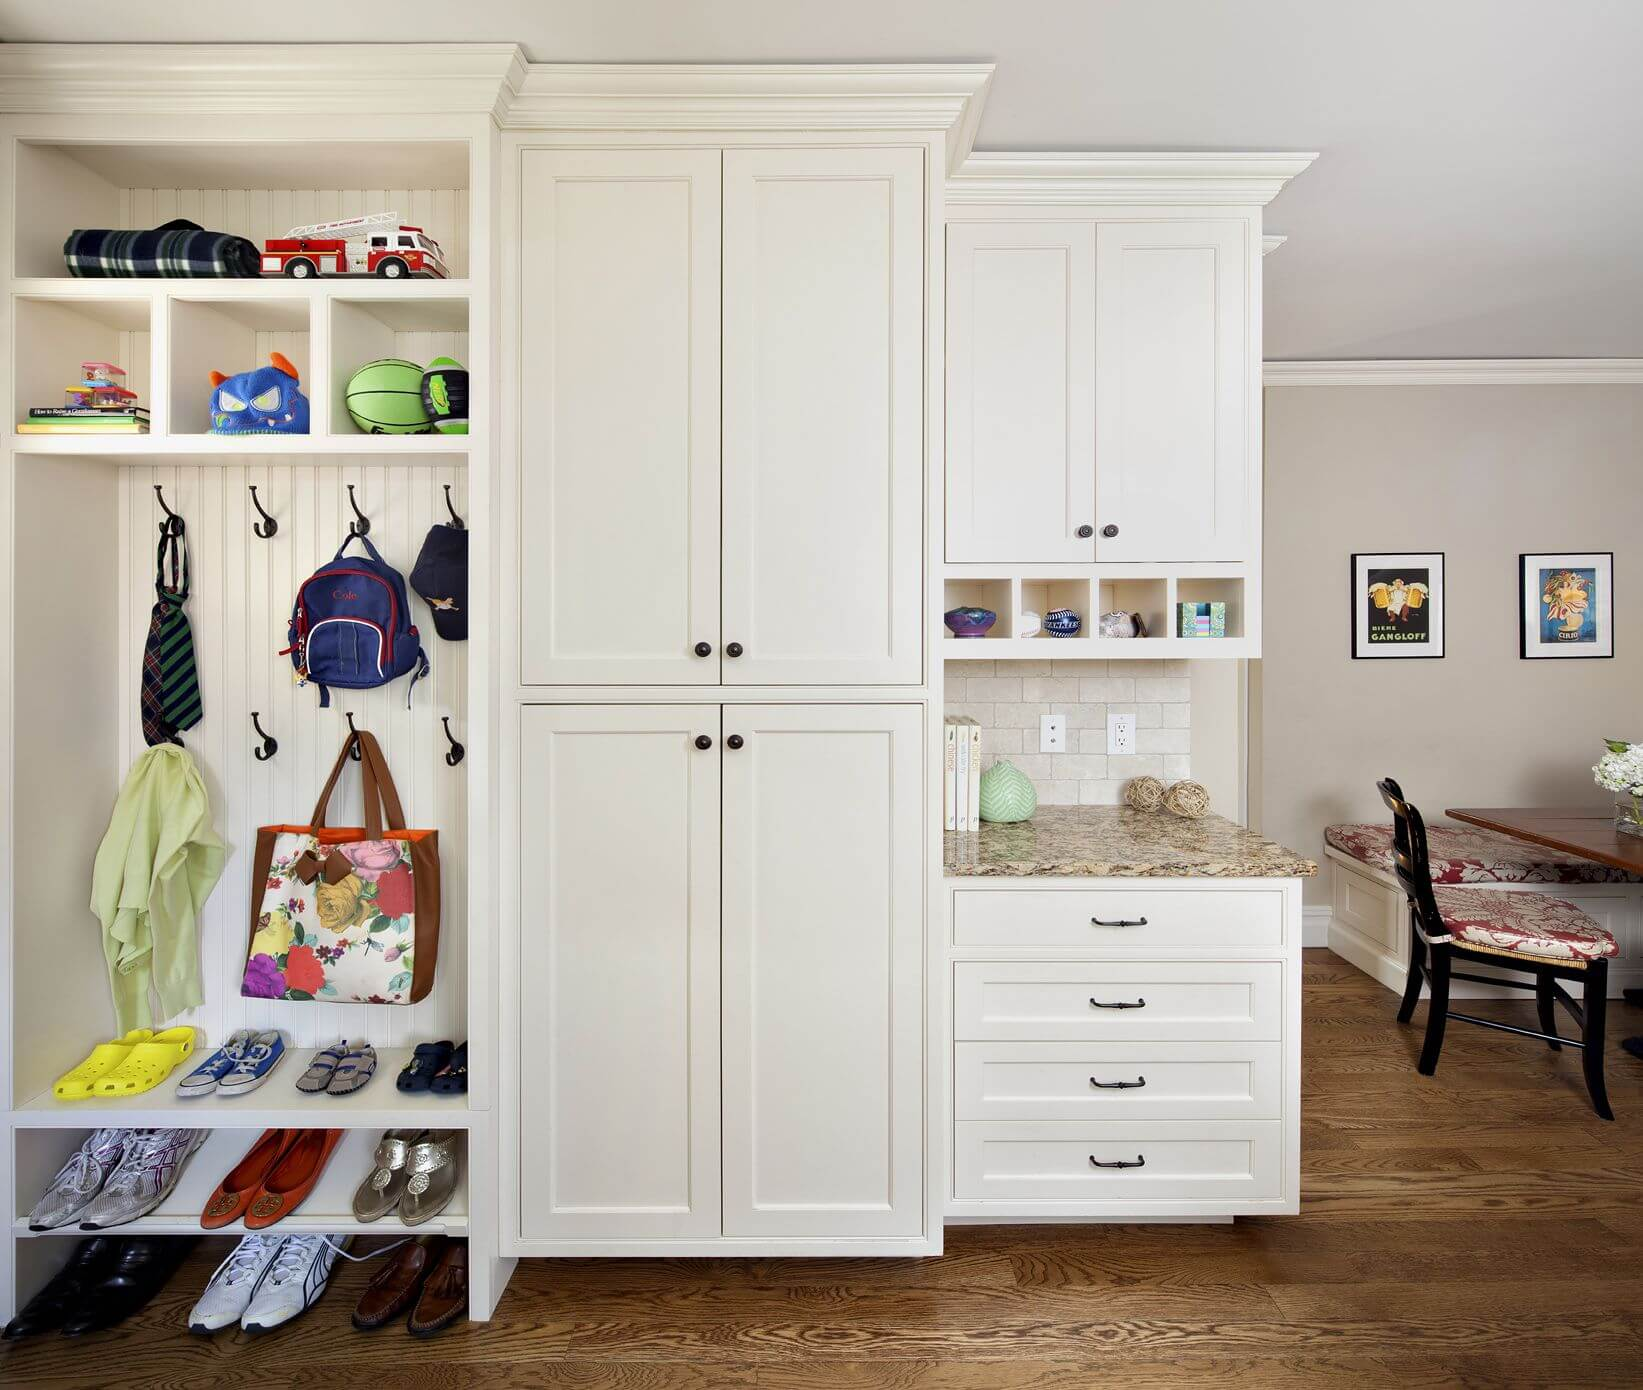 22 incredible mudroom ideas with storage lockers benches for Small dining area solutions